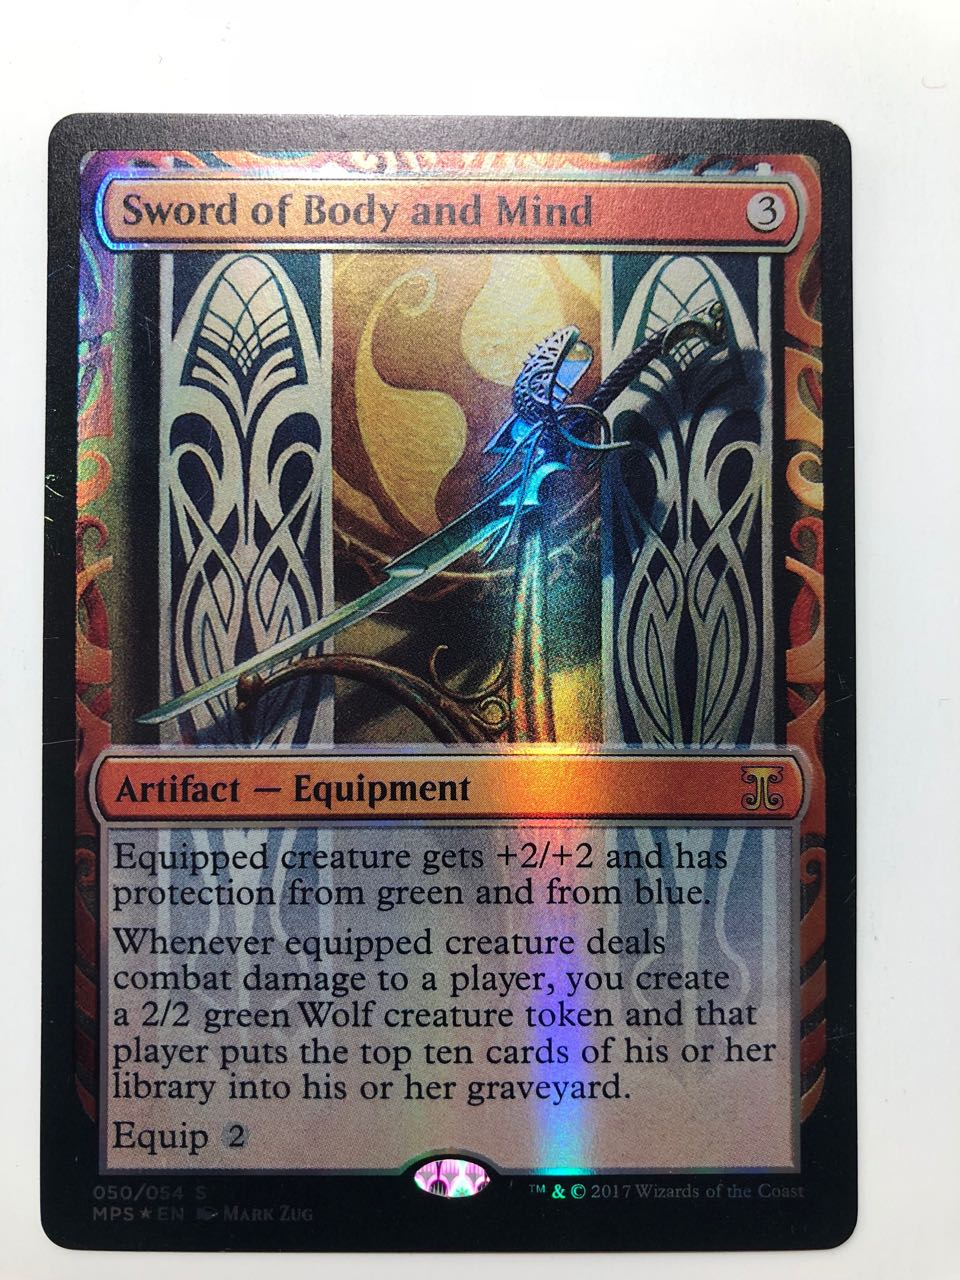 Proxy Mtg King Proxies Cards 8.0 Magic VIP The 25pcs  Foil Cards Kaladesh Inventions Amonkhet Gathering Board Game MH1